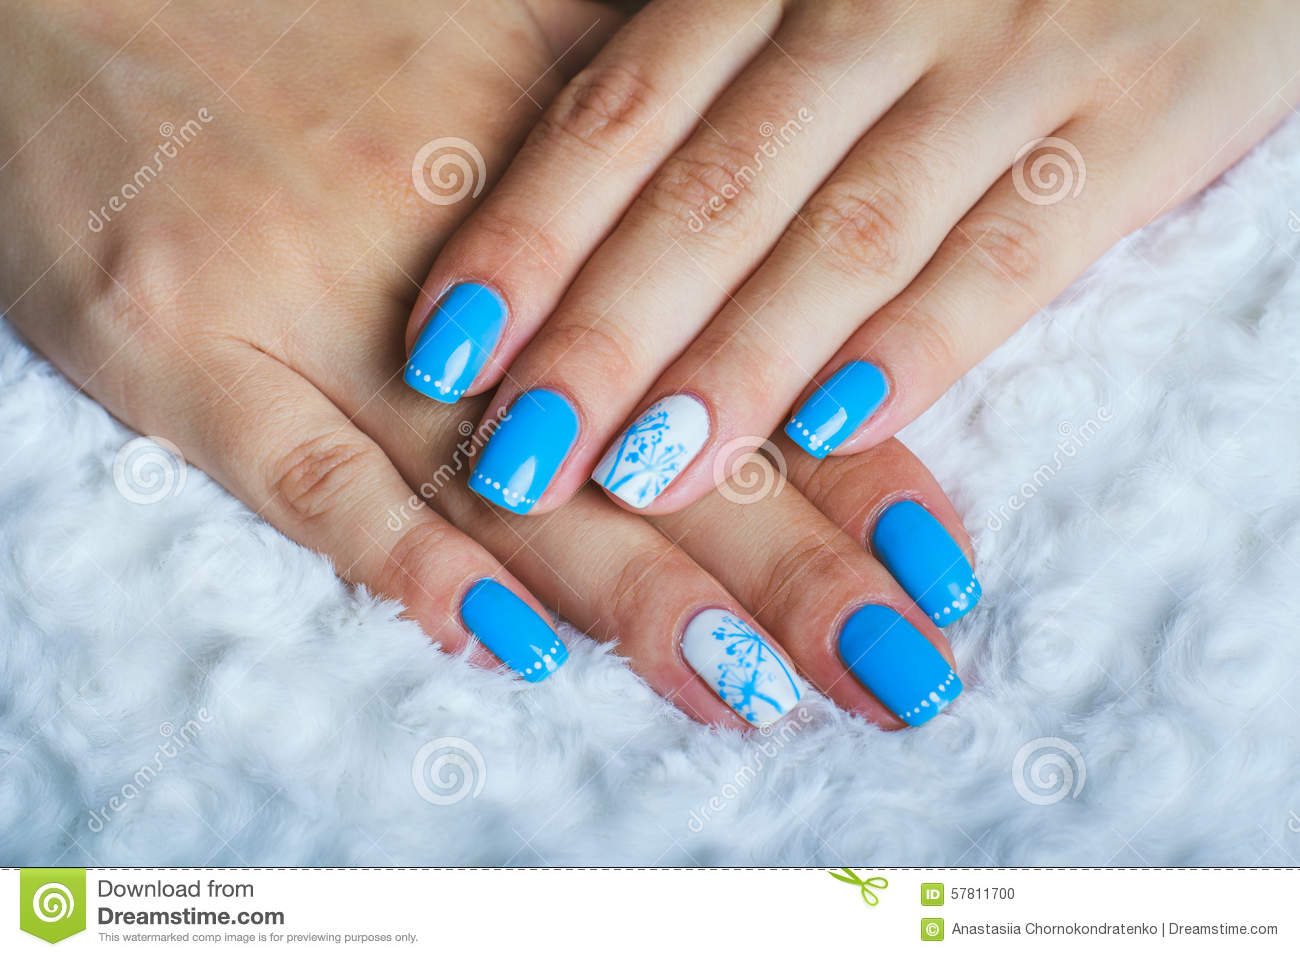 Simple Blue Nails With Accent Dandelion Flower Nail Art